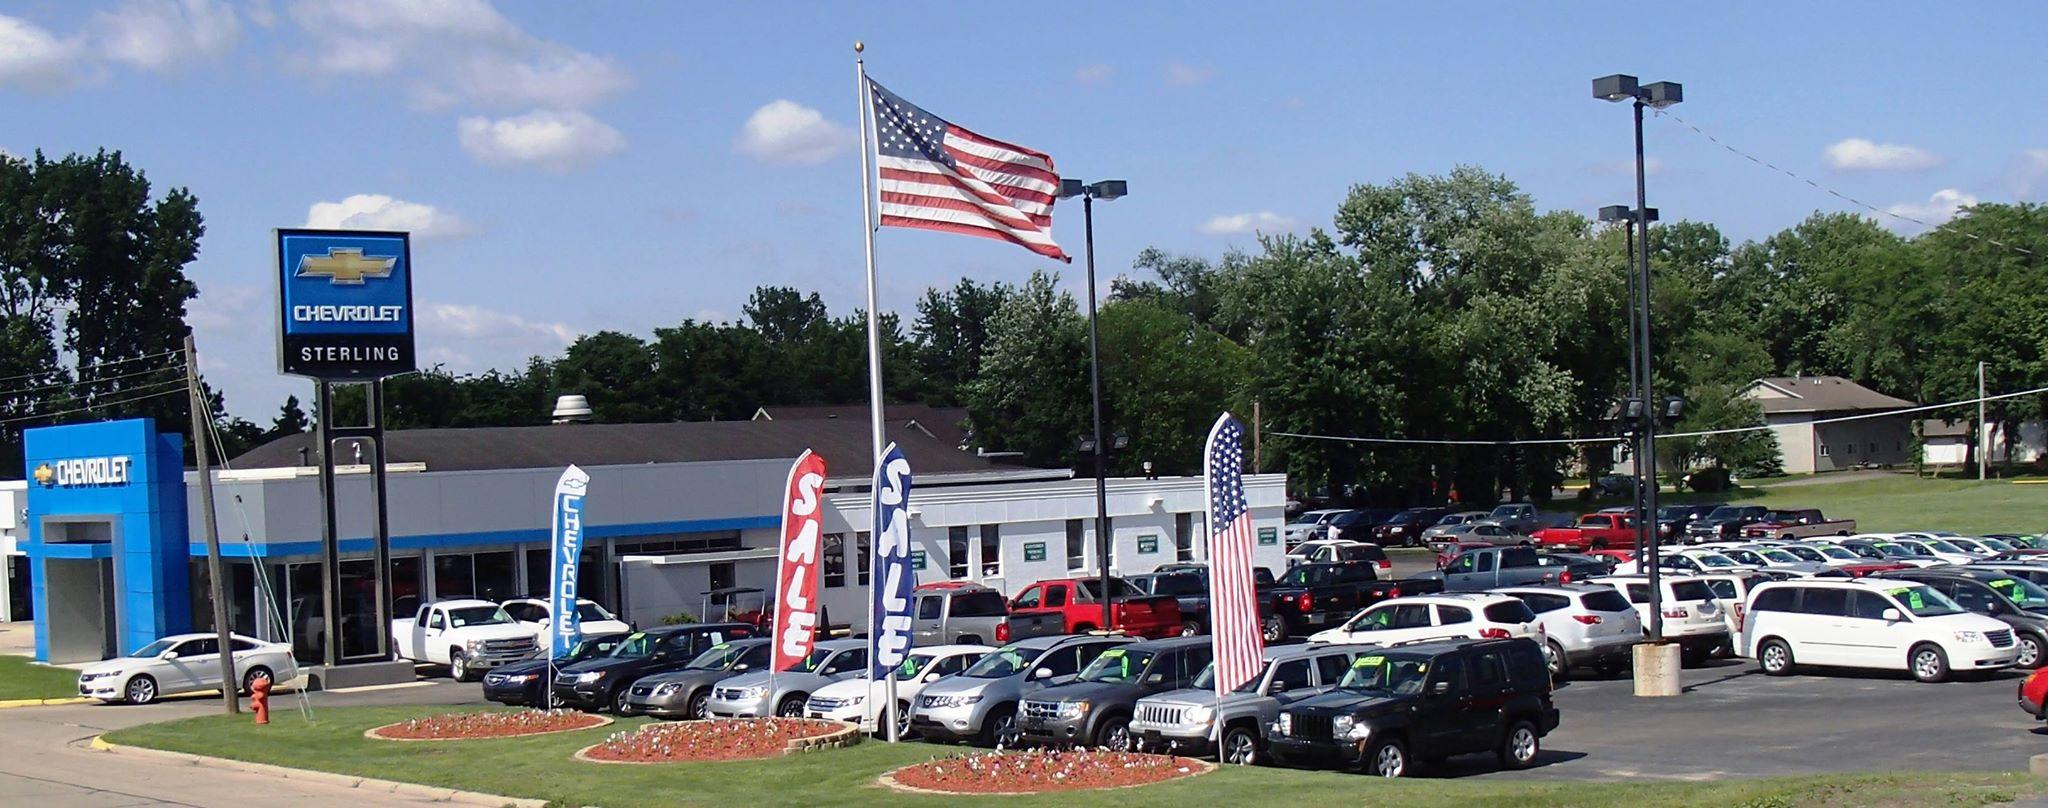 Subaru Dealers Illinois >> Sterling Chevrolet in Sterling, IL 61081 - ChamberofCommerce.com